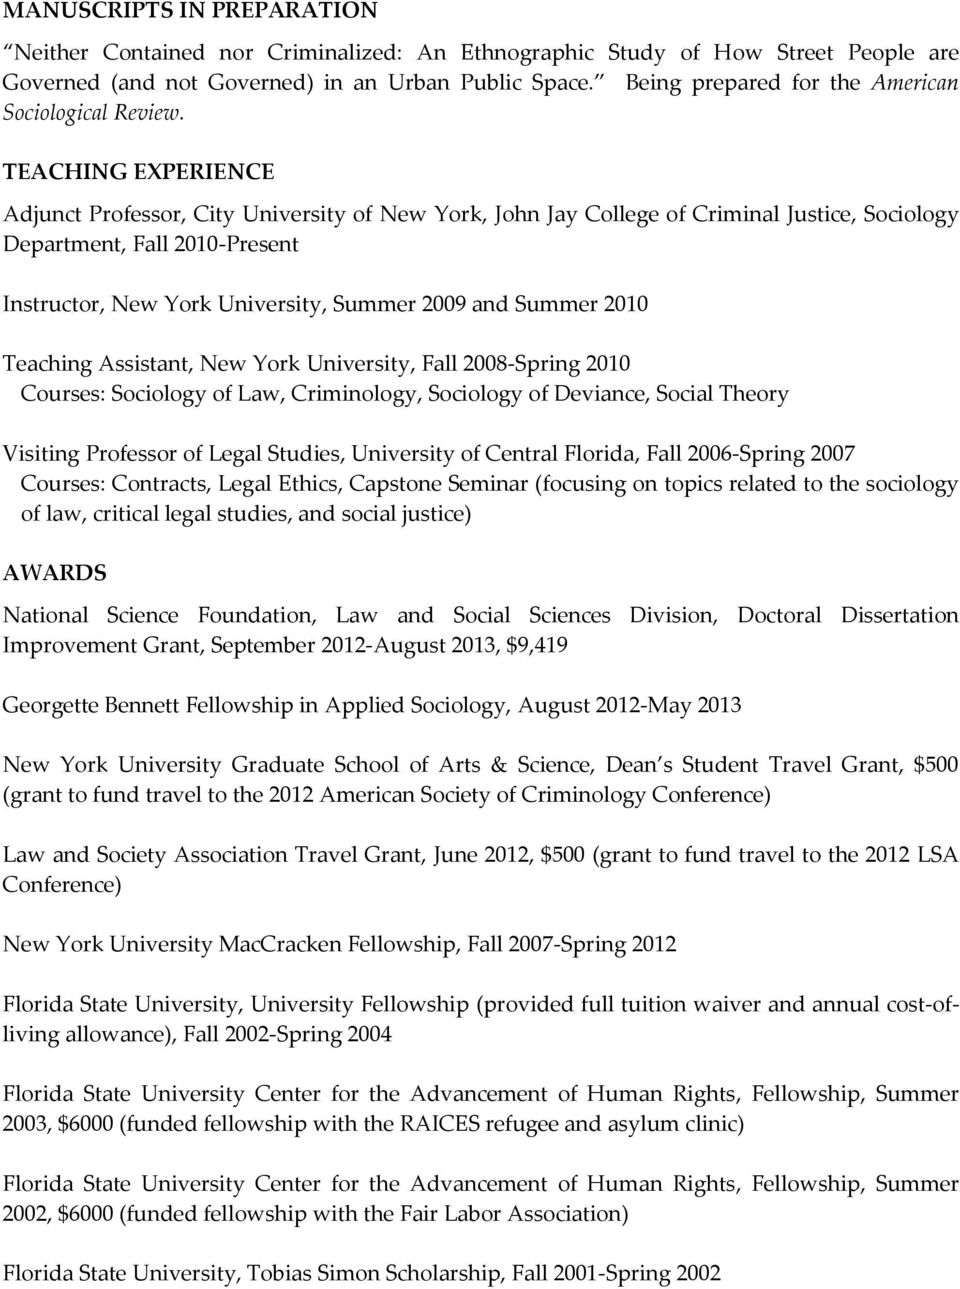 TEACHING EXPERIENCE Adjunct Professor, City University of New York, John Jay College of Criminal Justice, Sociology Department, Fall 2010-Present Instructor,, Summer 2009 and Summer 2010 Teaching